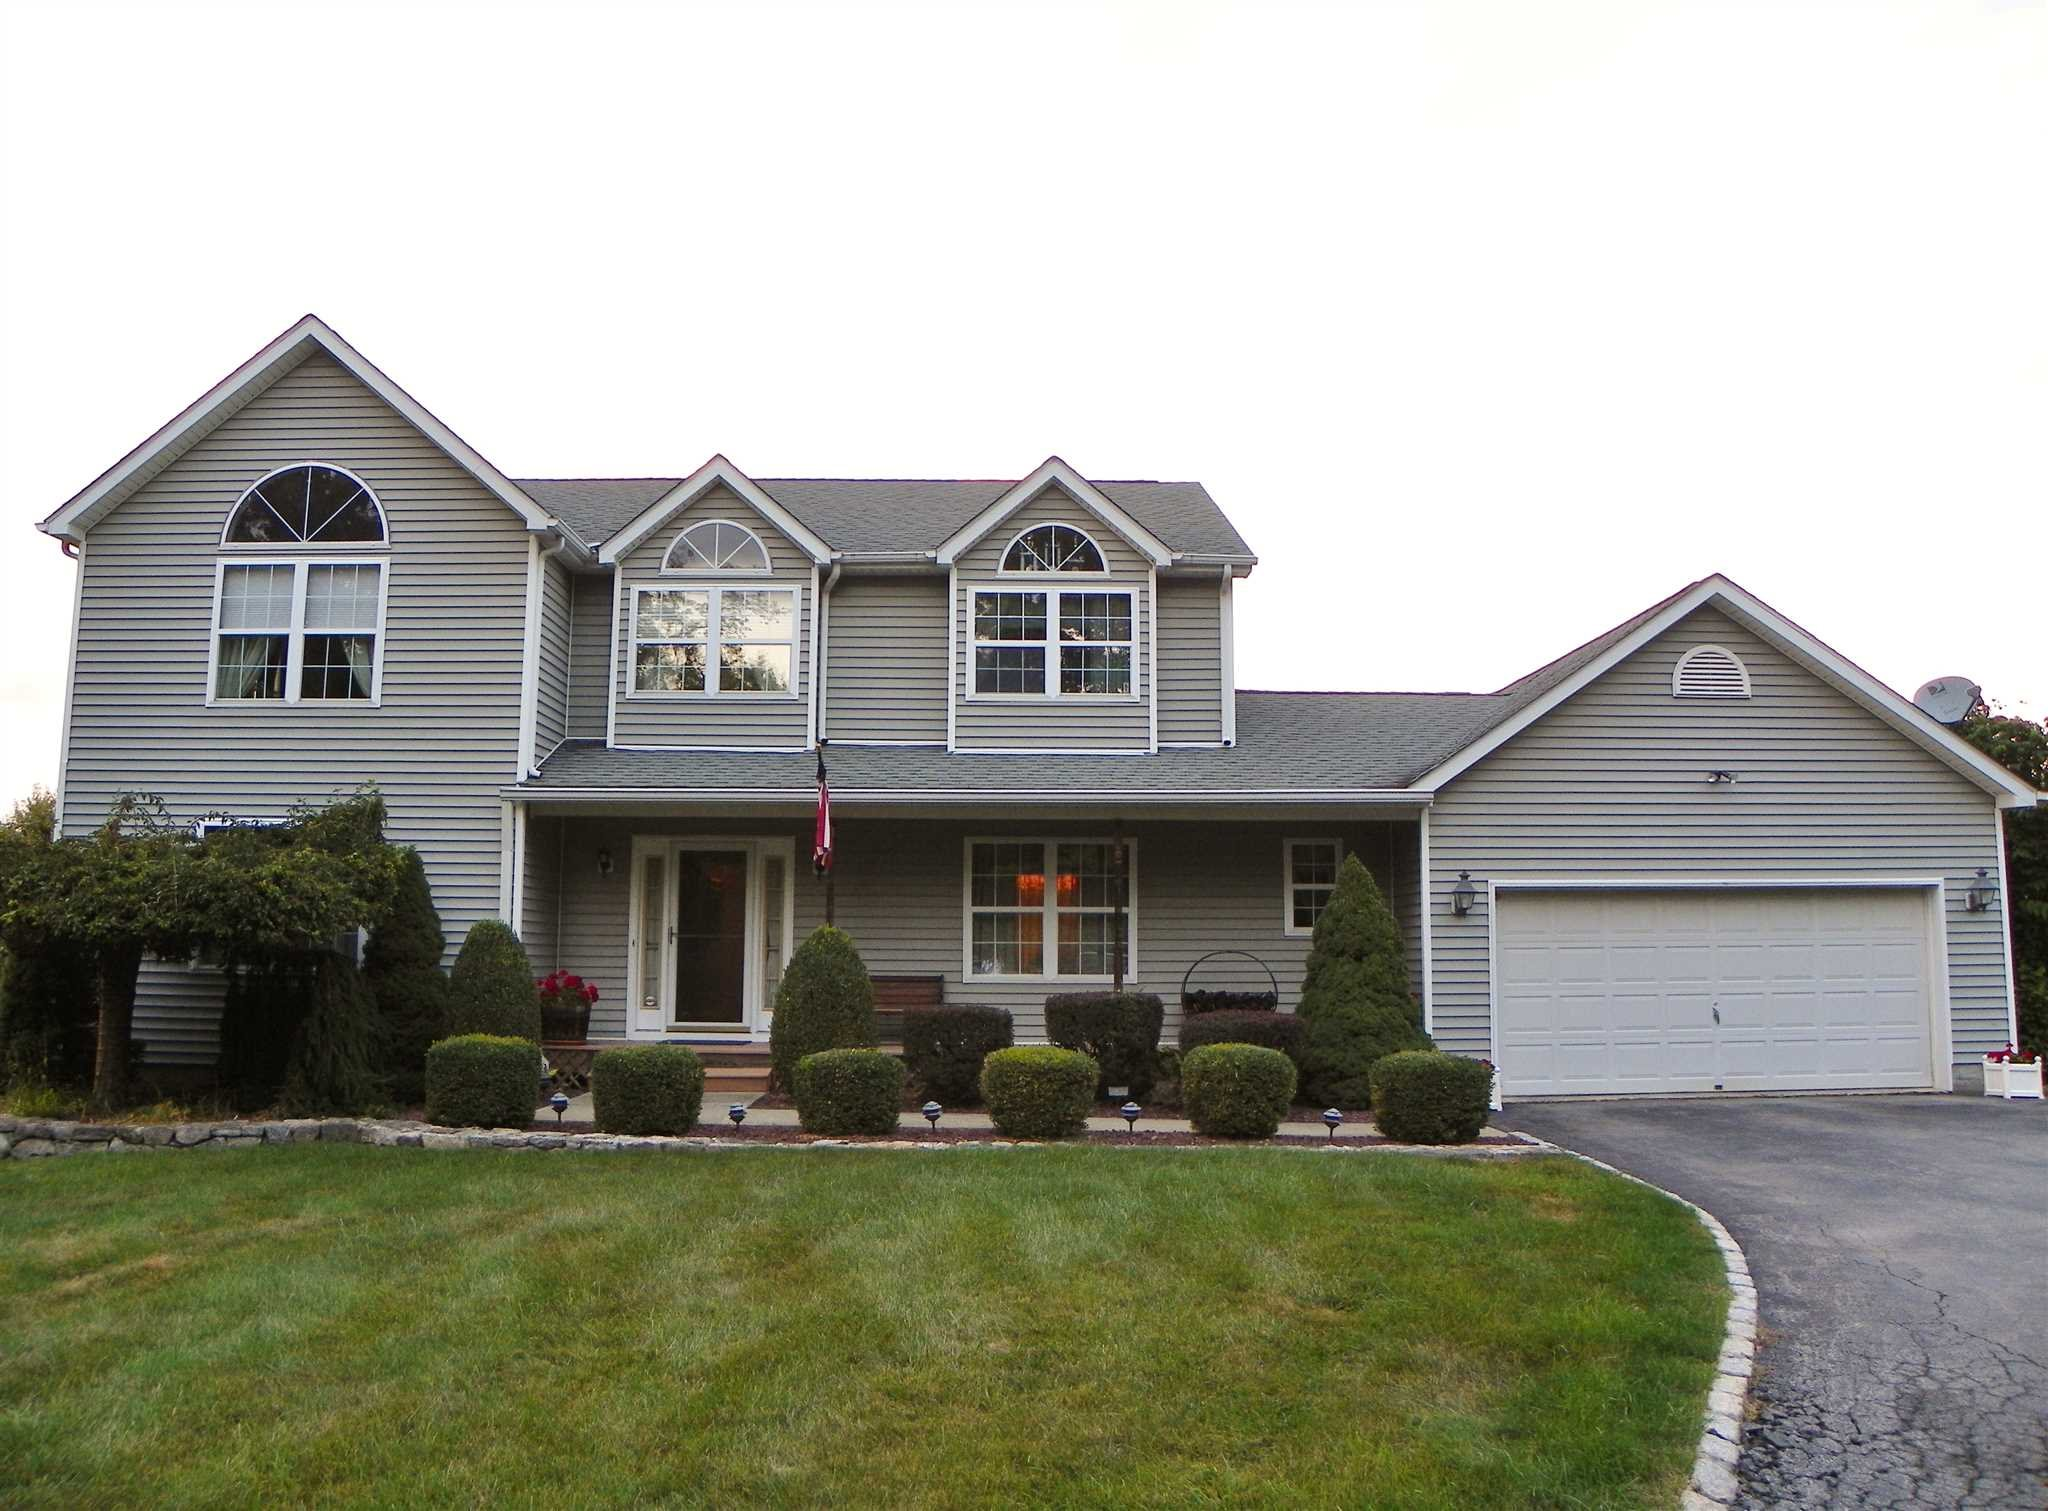 Single Family Home for Sale at 229 STORMVILLE MOUNTAIN Road 229 STORMVILLE MOUNTAIN Road East Fishkill, New York 12582 United States